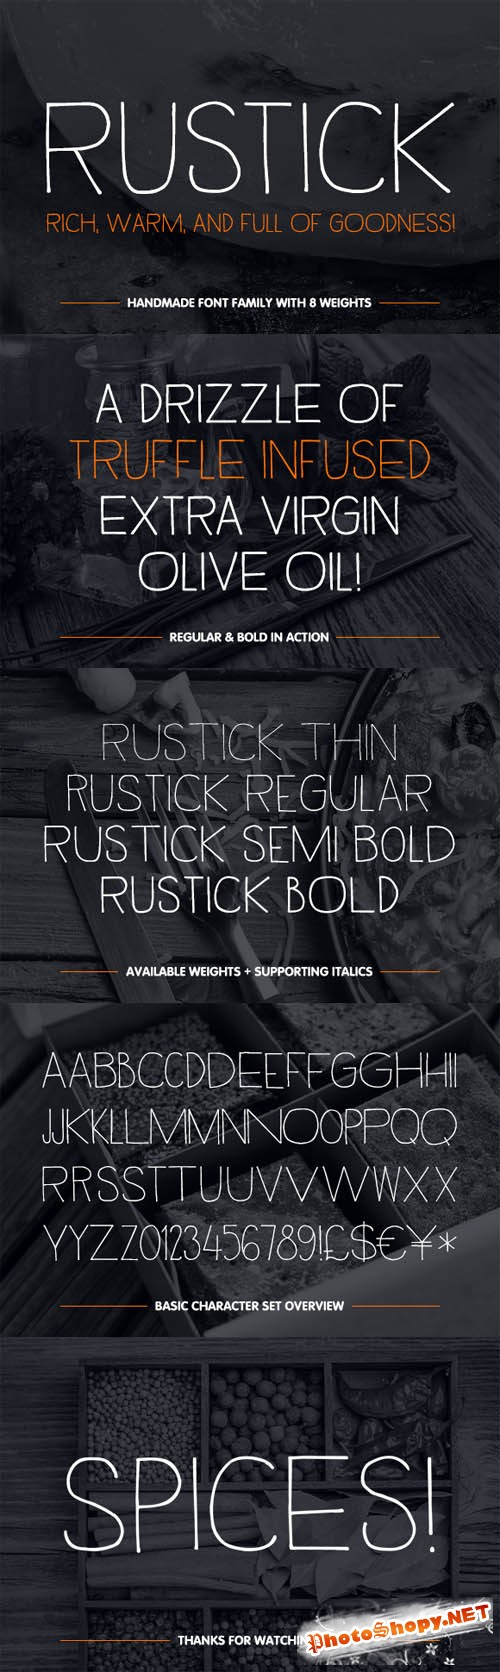 Rustick Type Family Font